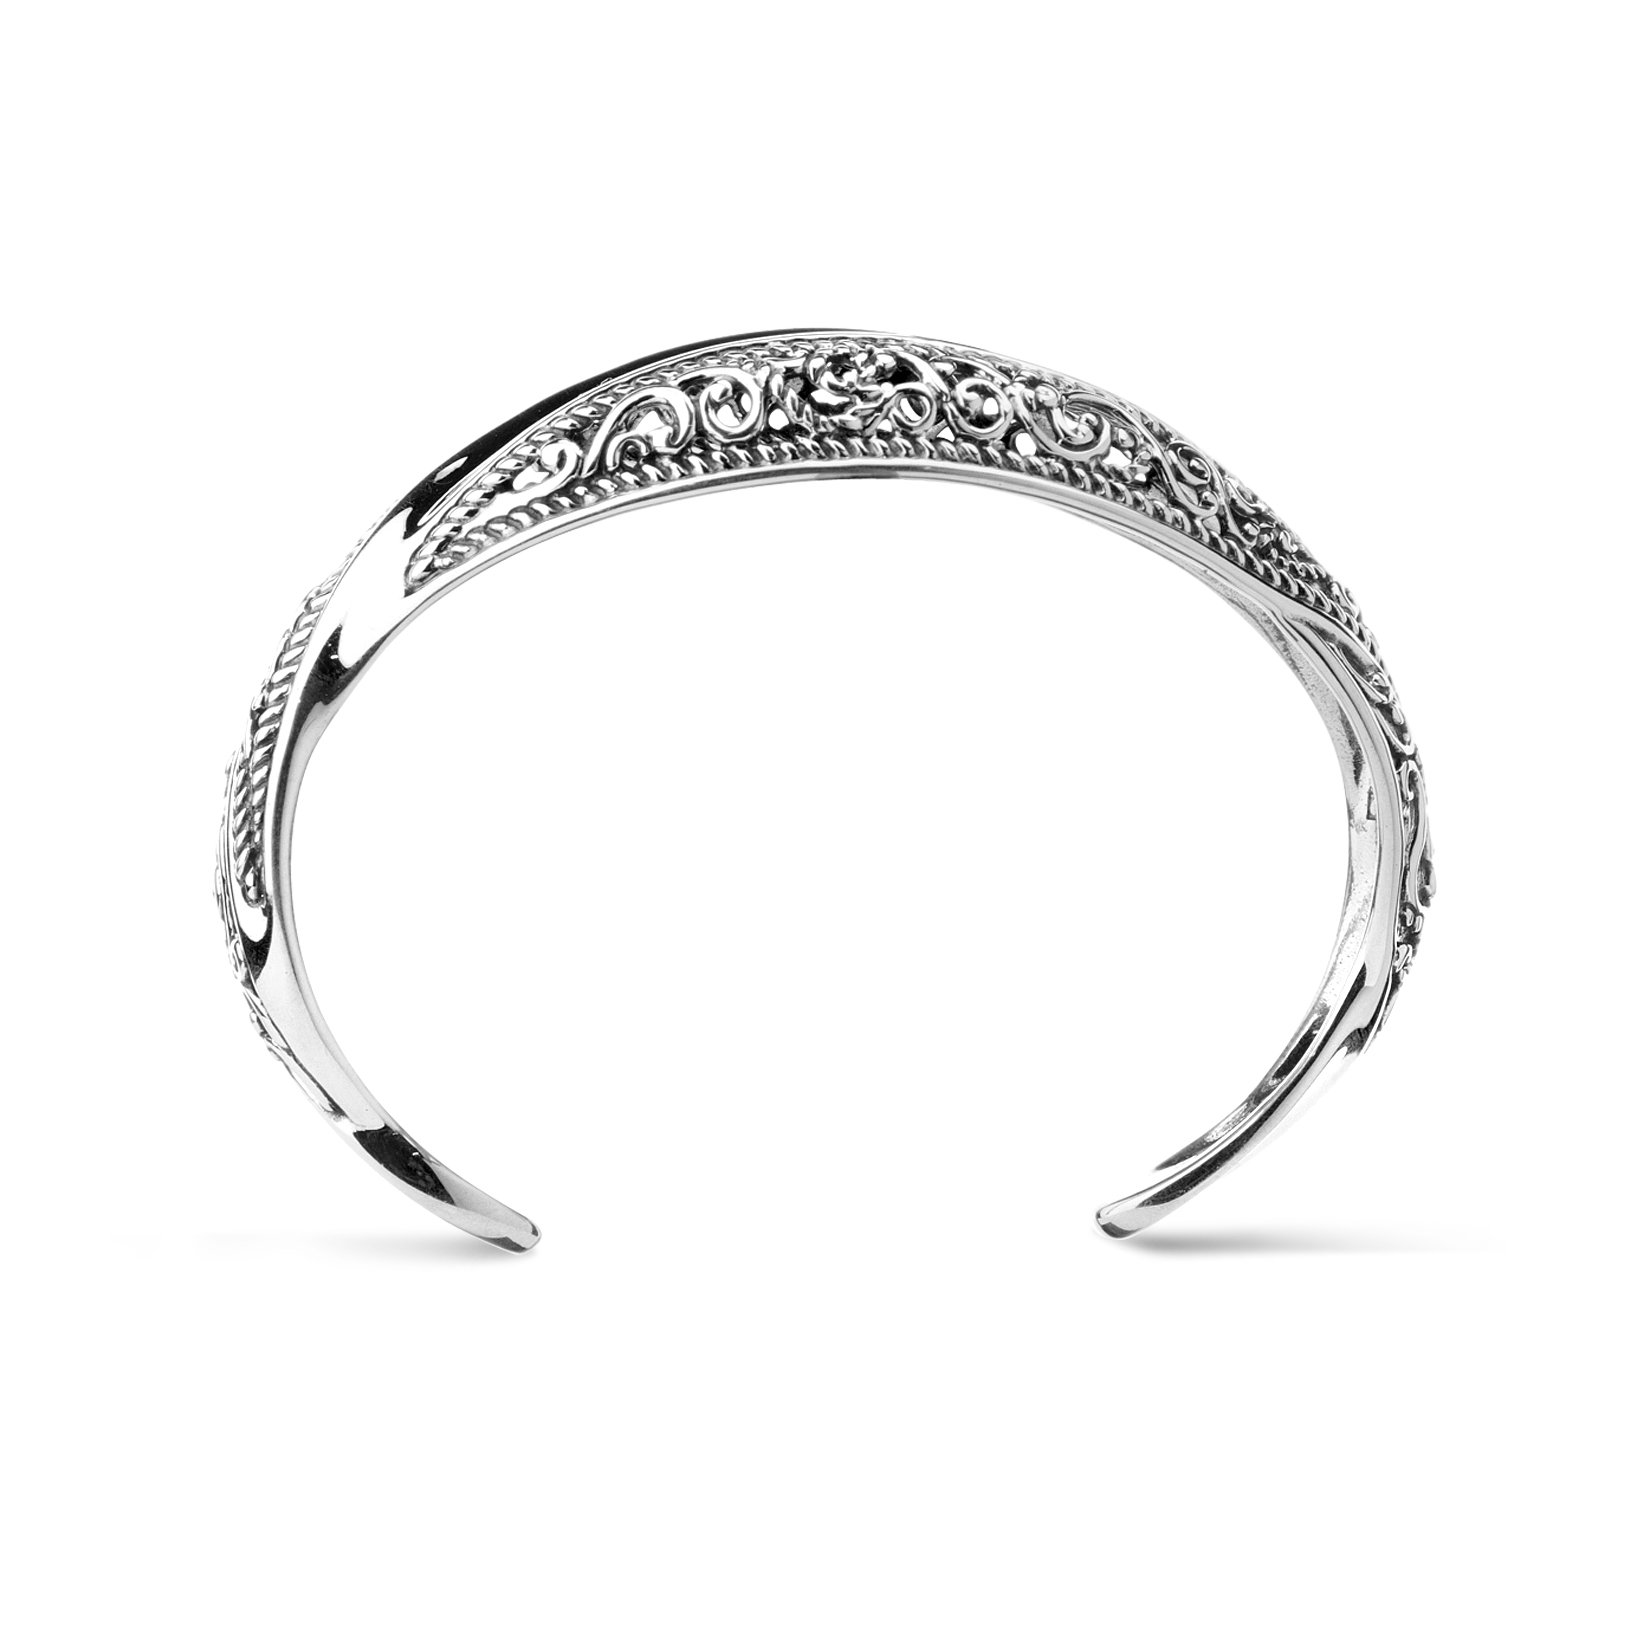 Carolyn Pollack Signature Genuine .925 Sterling Silver Wave Cuff Bracelet by Carolyn Pollack (Image #5)